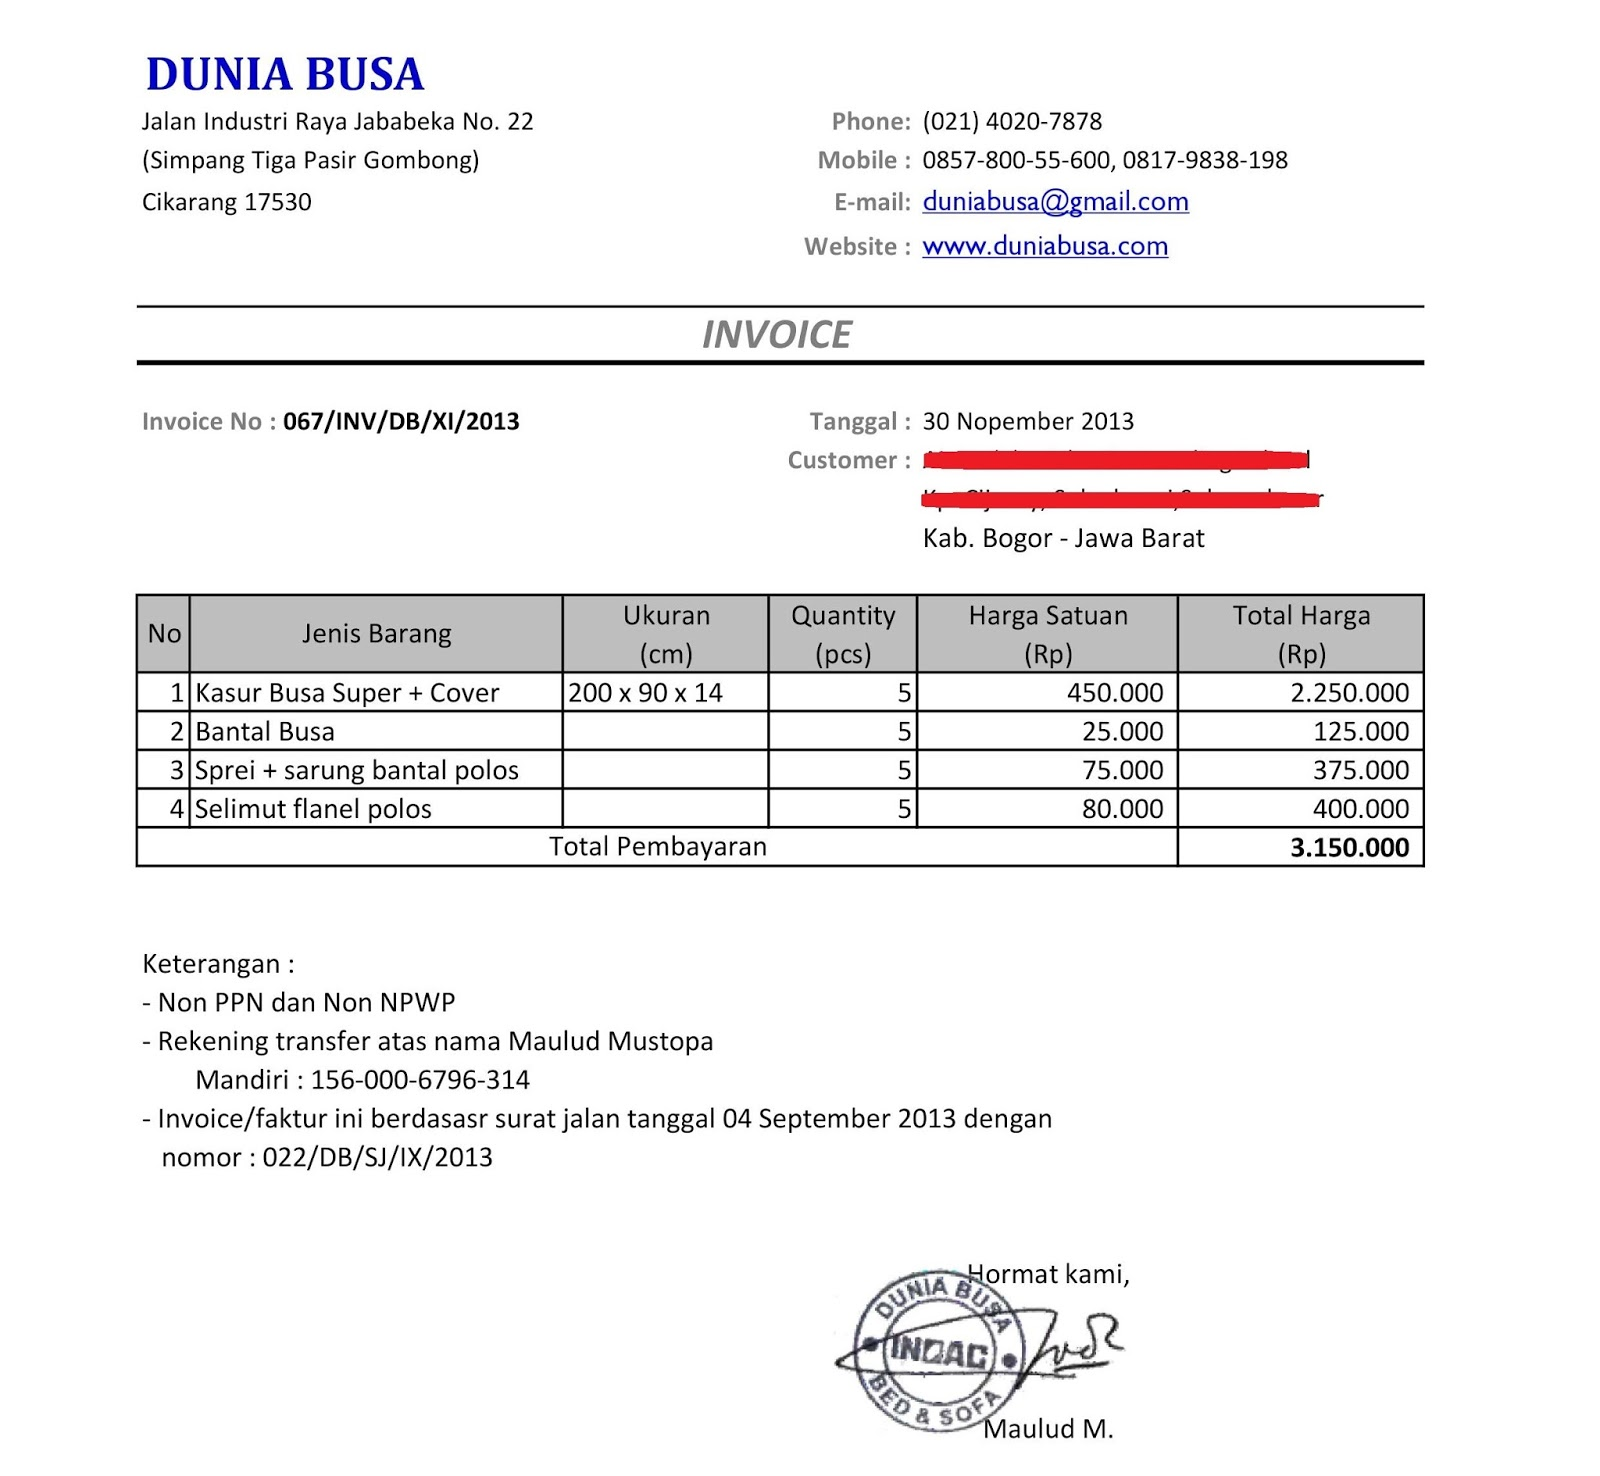 Pigbrotherus  Nice Free Invoice Online  Create Invoice Online  Invoice Template  With Magnificent Contoh Format Invoice Atau Surat Tagihan  Brankas Arsip  Free Invoice Online With Beauteous Print Receipts Online Also Adr Depositary Receipt In Addition Receipt Printers For Sale And Receipt Book Maker As Well As Epson Printer Receipt Additionally Receipt Software Free From Sklepco With Pigbrotherus  Magnificent Free Invoice Online  Create Invoice Online  Invoice Template  With Beauteous Contoh Format Invoice Atau Surat Tagihan  Brankas Arsip  Free Invoice Online And Nice Print Receipts Online Also Adr Depositary Receipt In Addition Receipt Printers For Sale From Sklepco